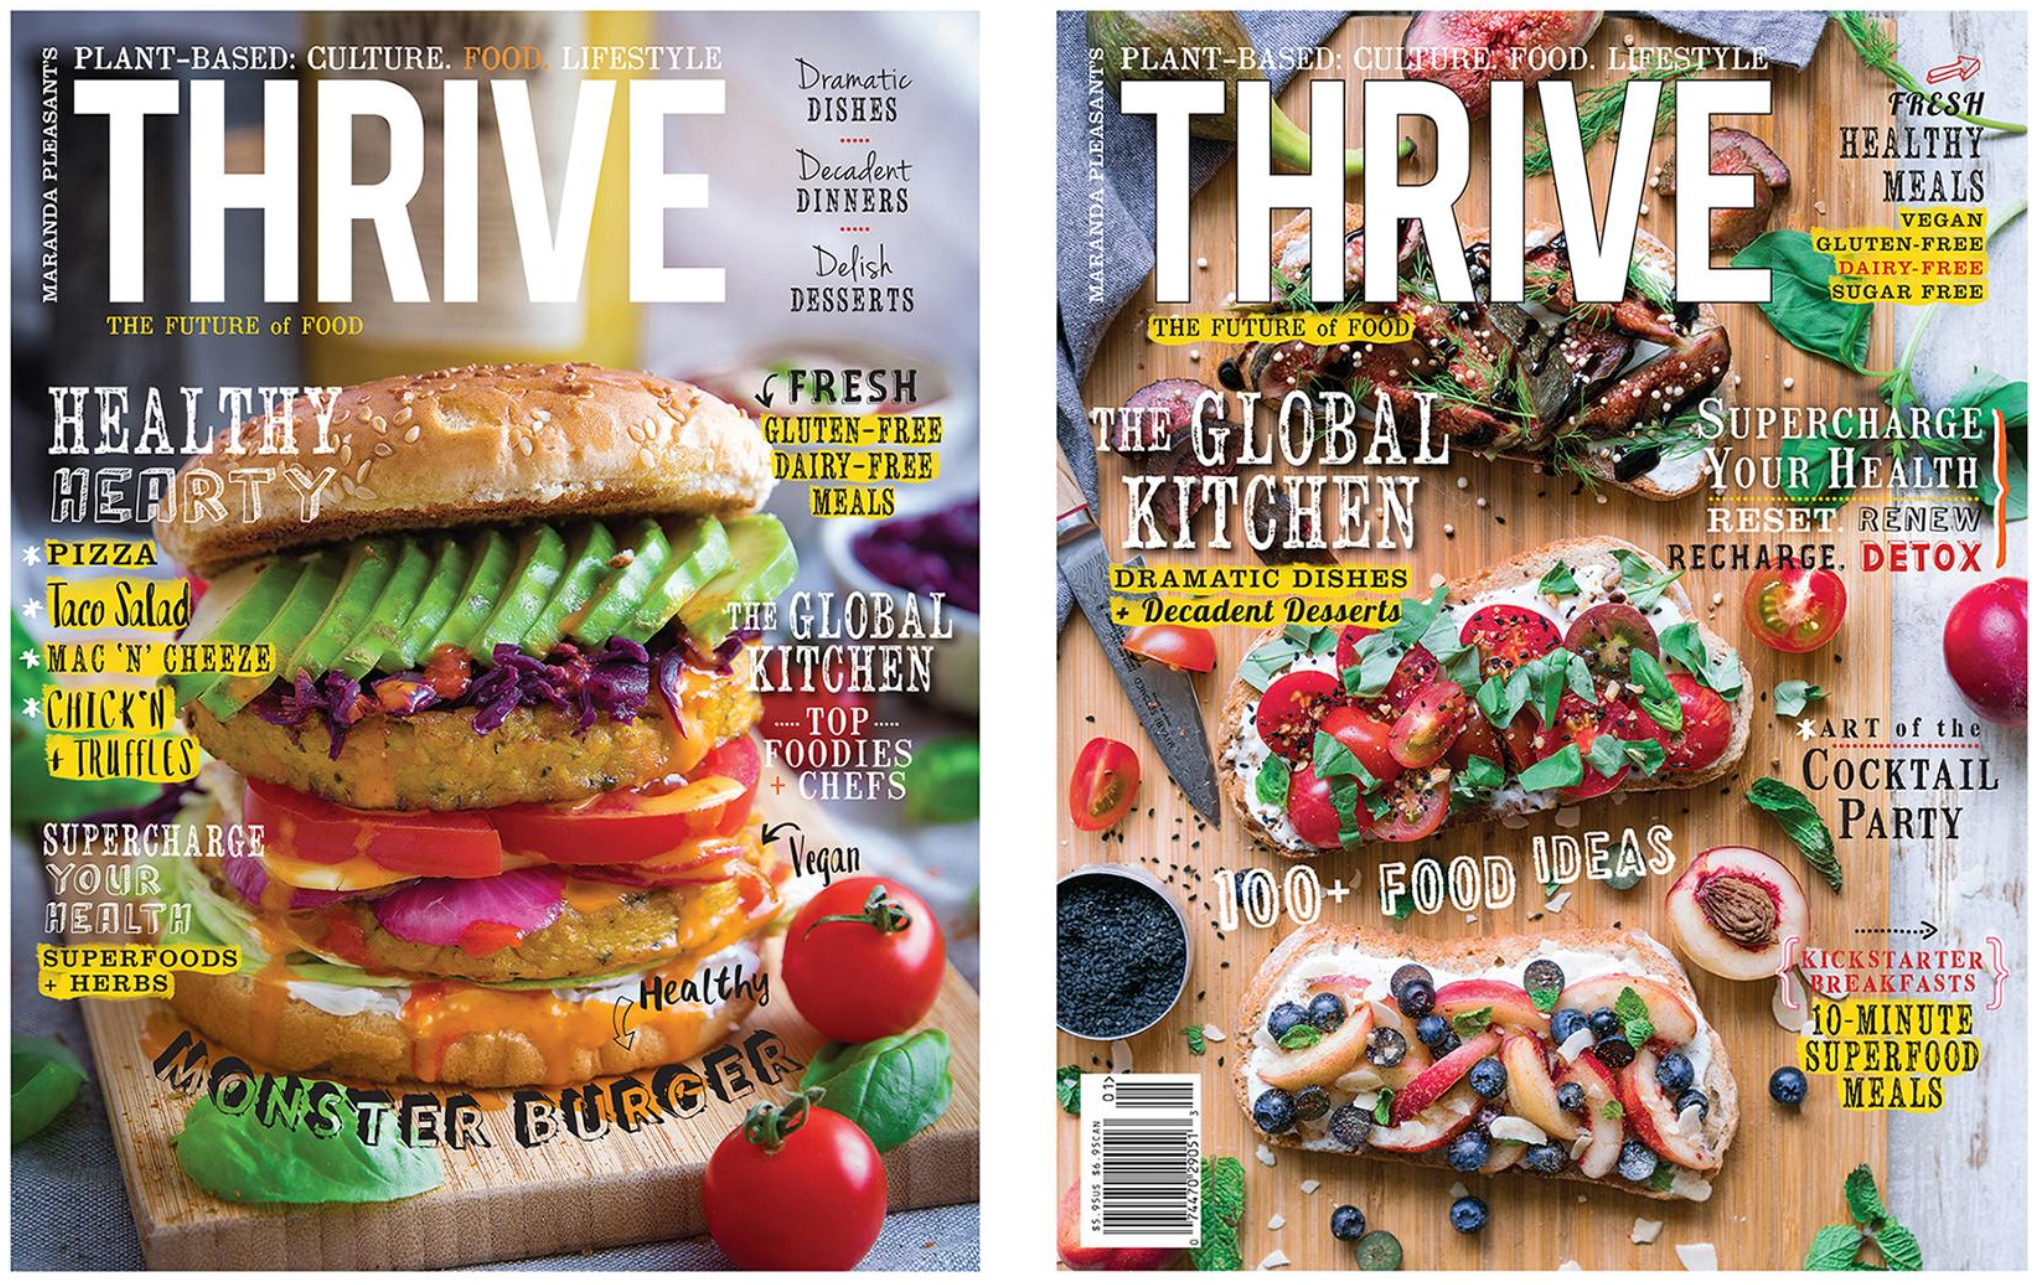 Thrivemag cover.PNG